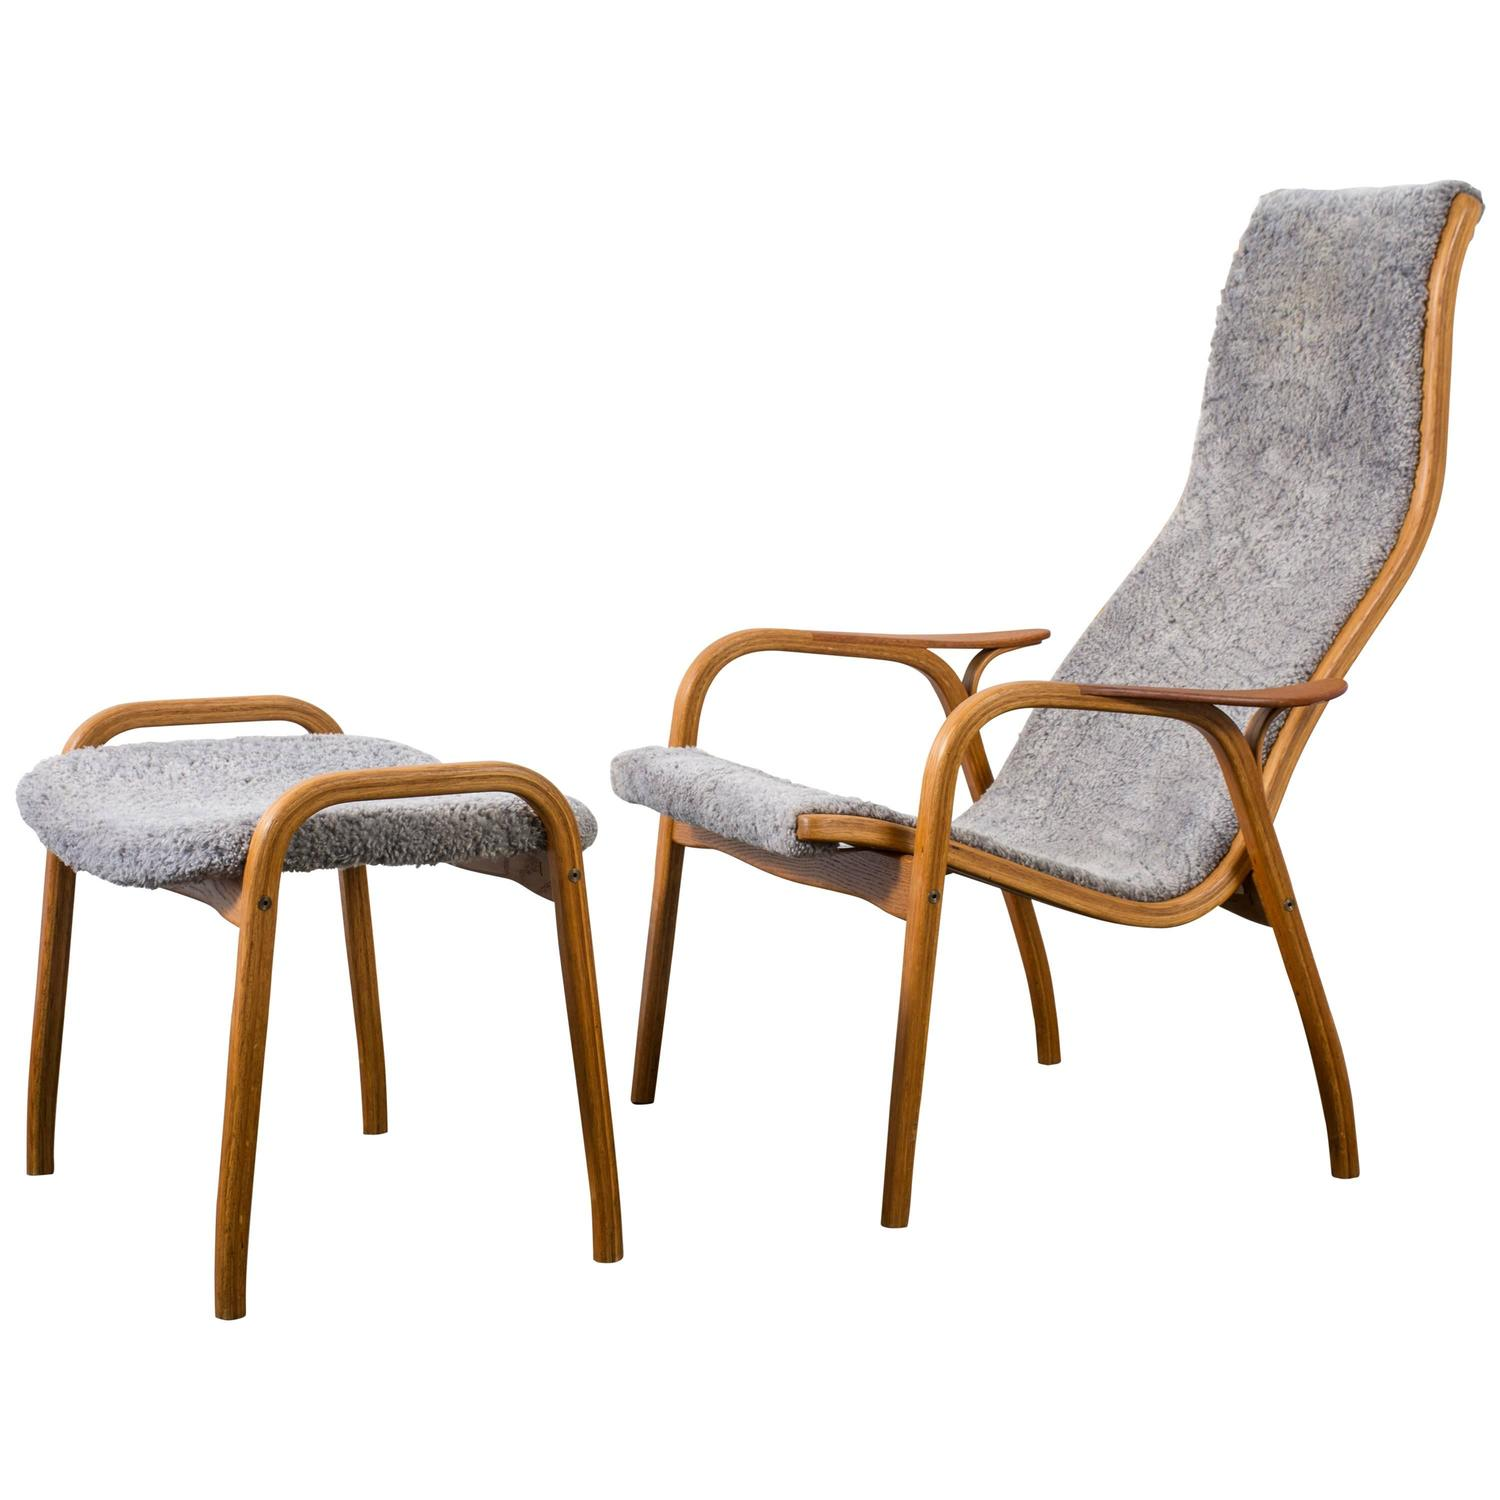 Yngve Ekstr?m Lamino Chair and Ottoman for Swedese Mobler at 1stdibs